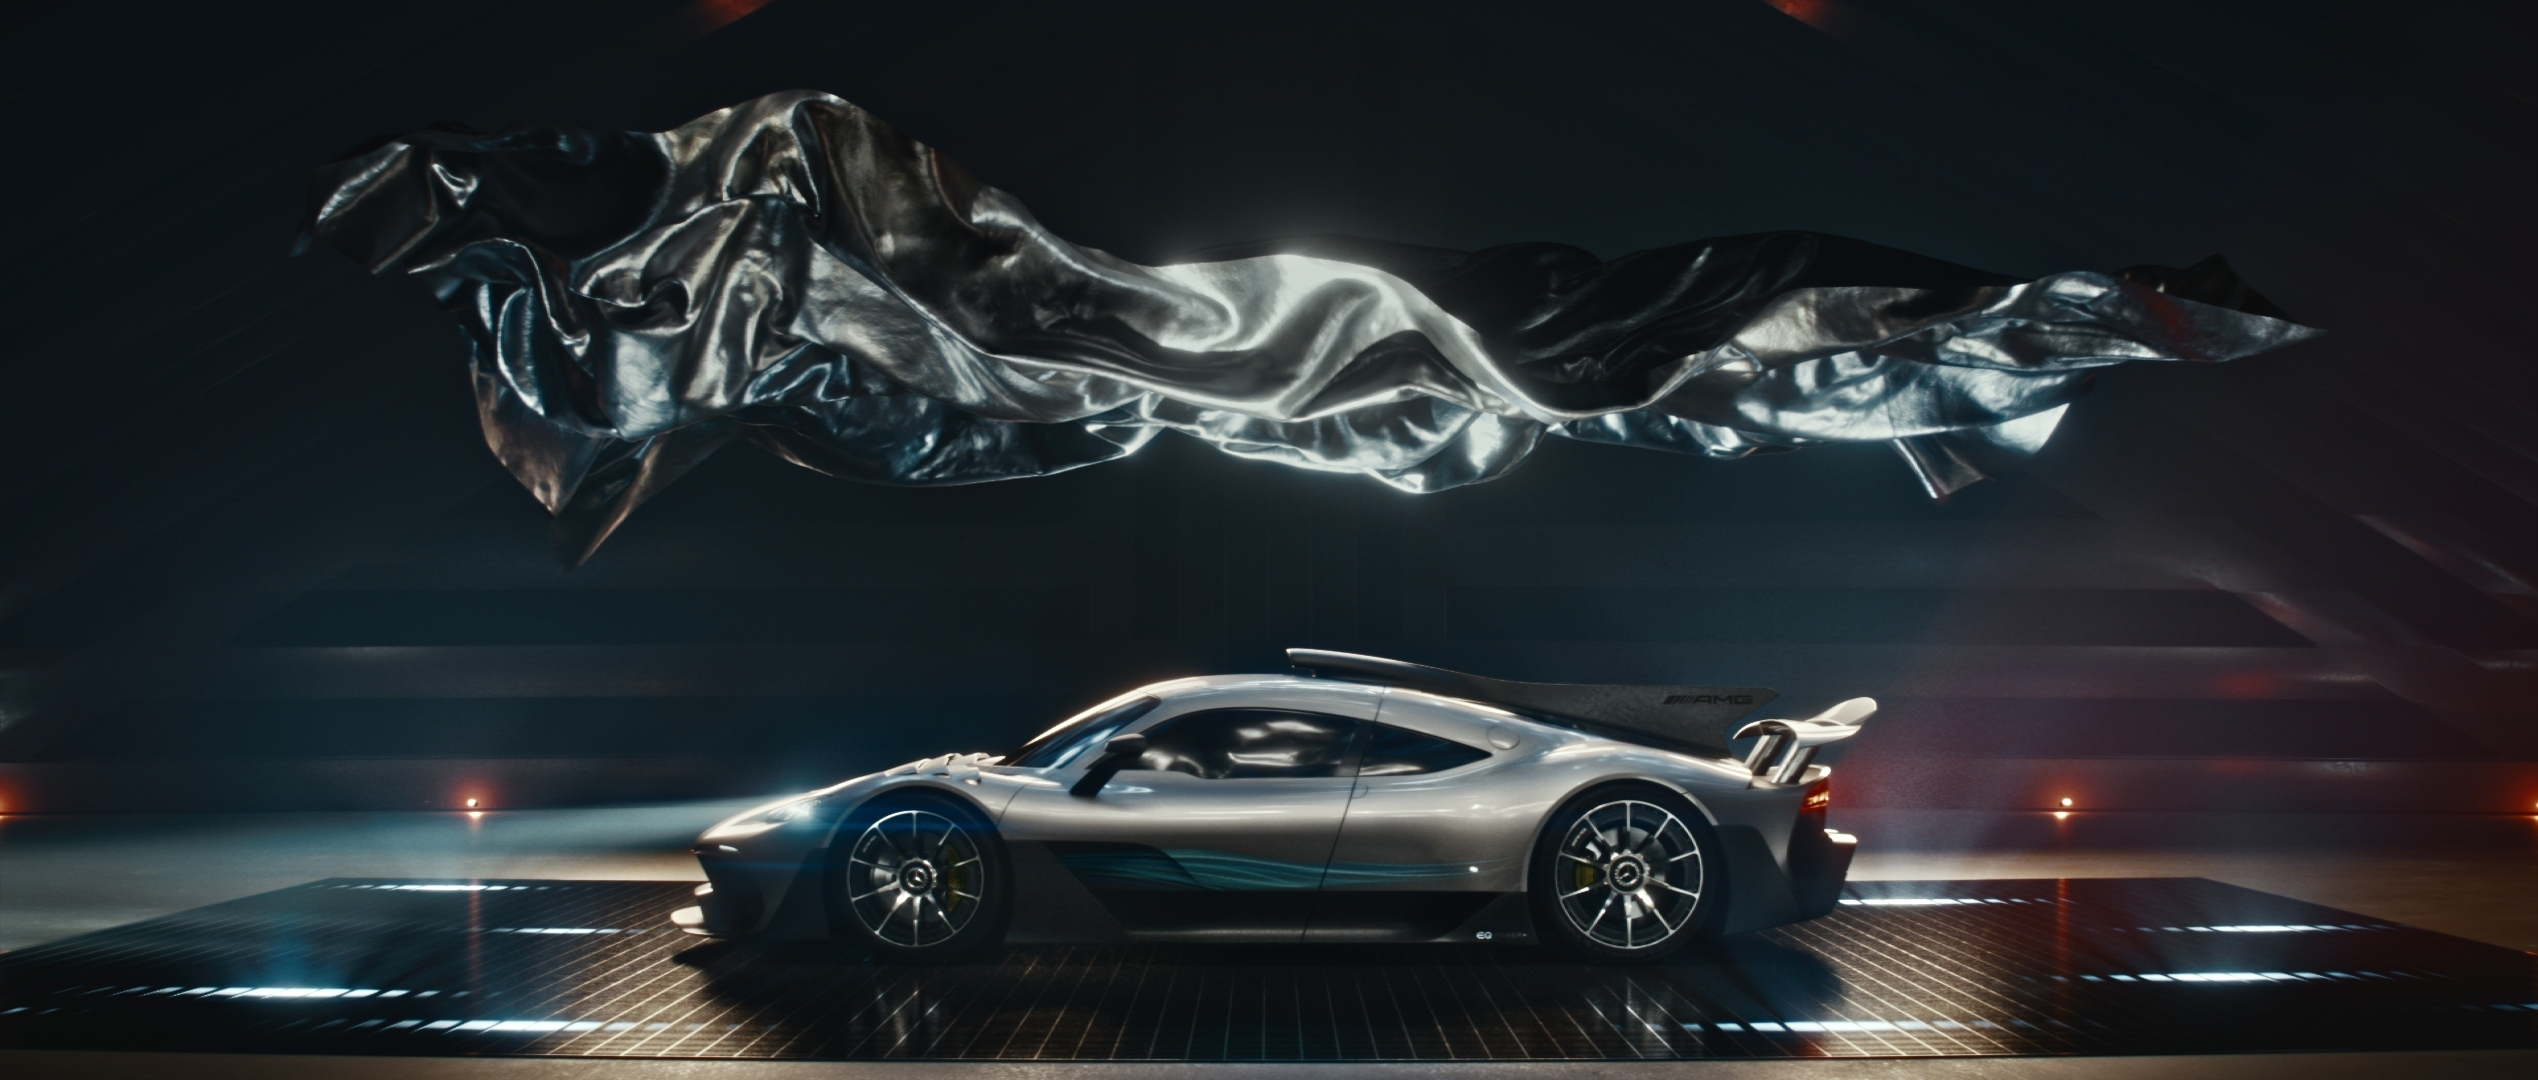 Mercedes benz usa debuts new brand campaign what makes us mercedes benz usa debuts new brand campaign what makes us showcasing championship style innovations business wire altavistaventures Gallery